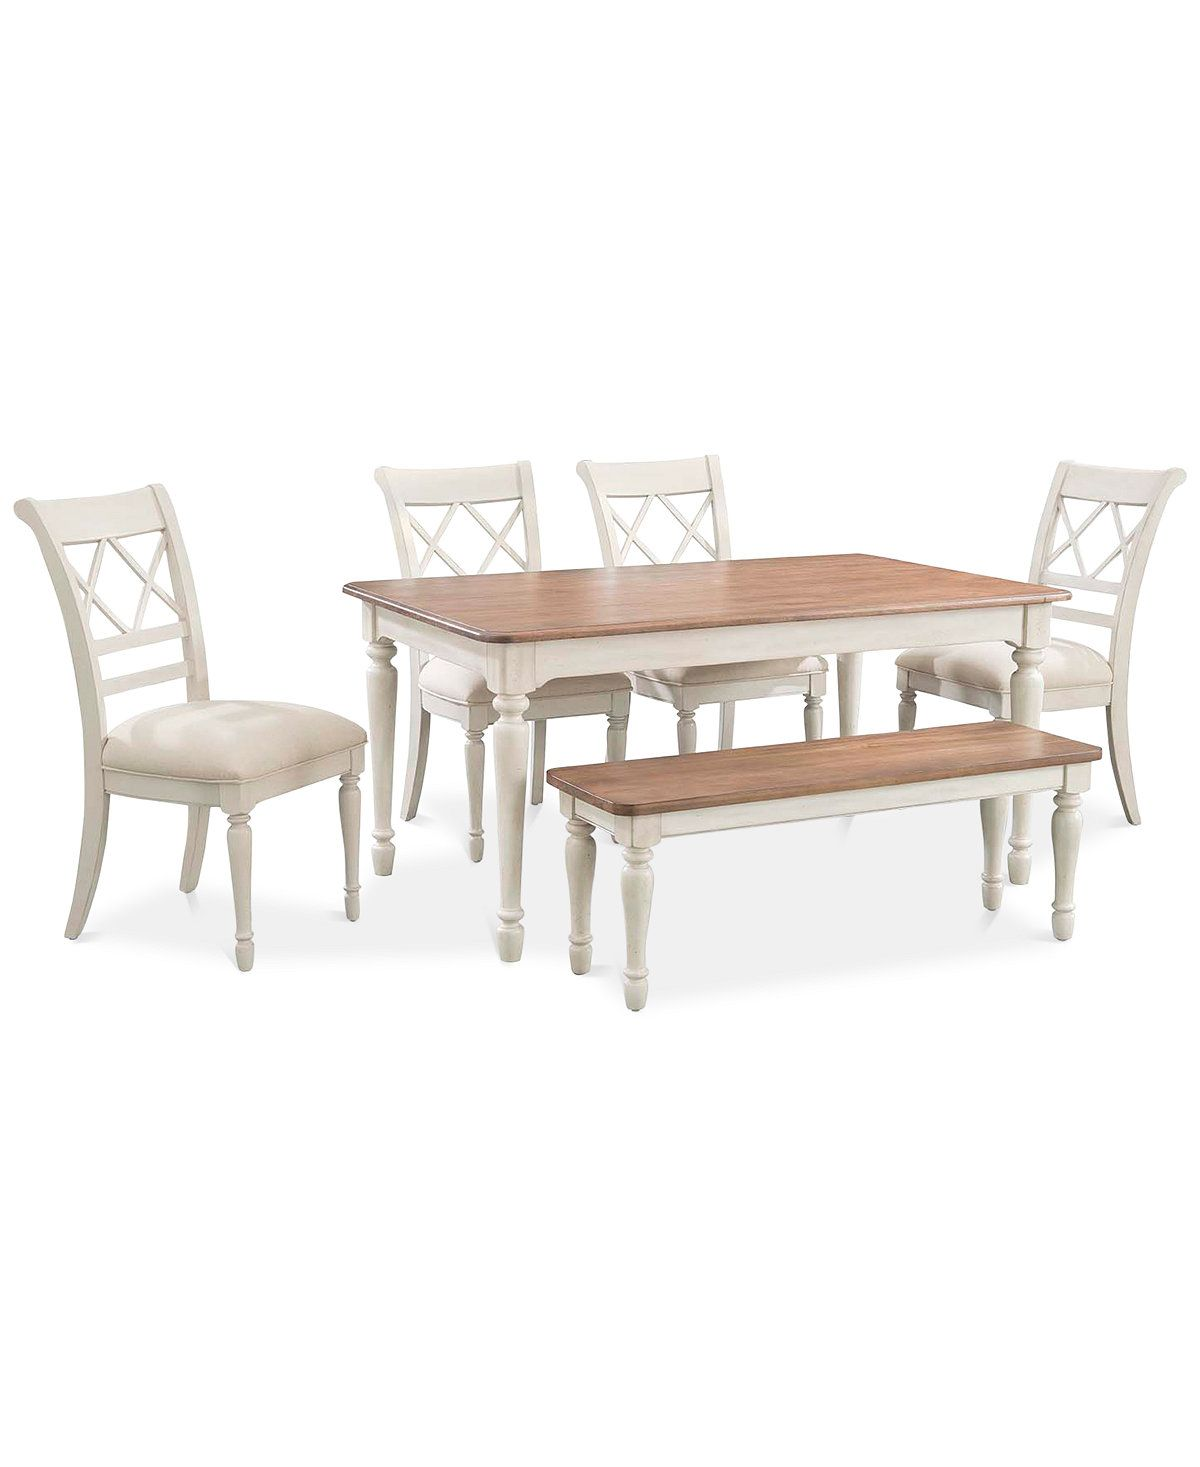 Cape May Dining Set 6 Pc Table 4 Side Chairs Bench Created For Macy S Furniture